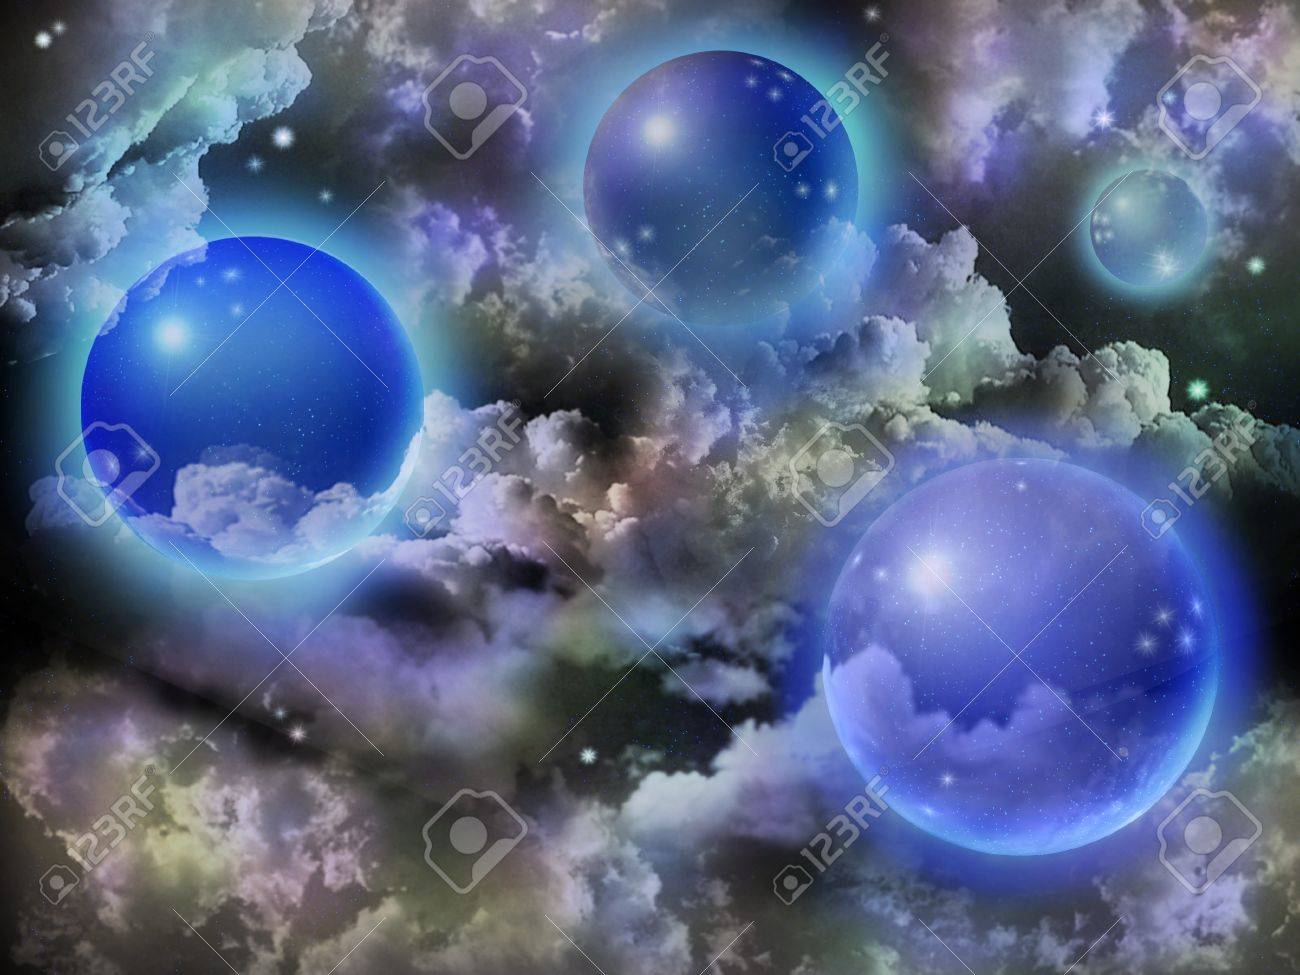 Space fantasy of spheres, stars and clouds Stock Photo - 11663608